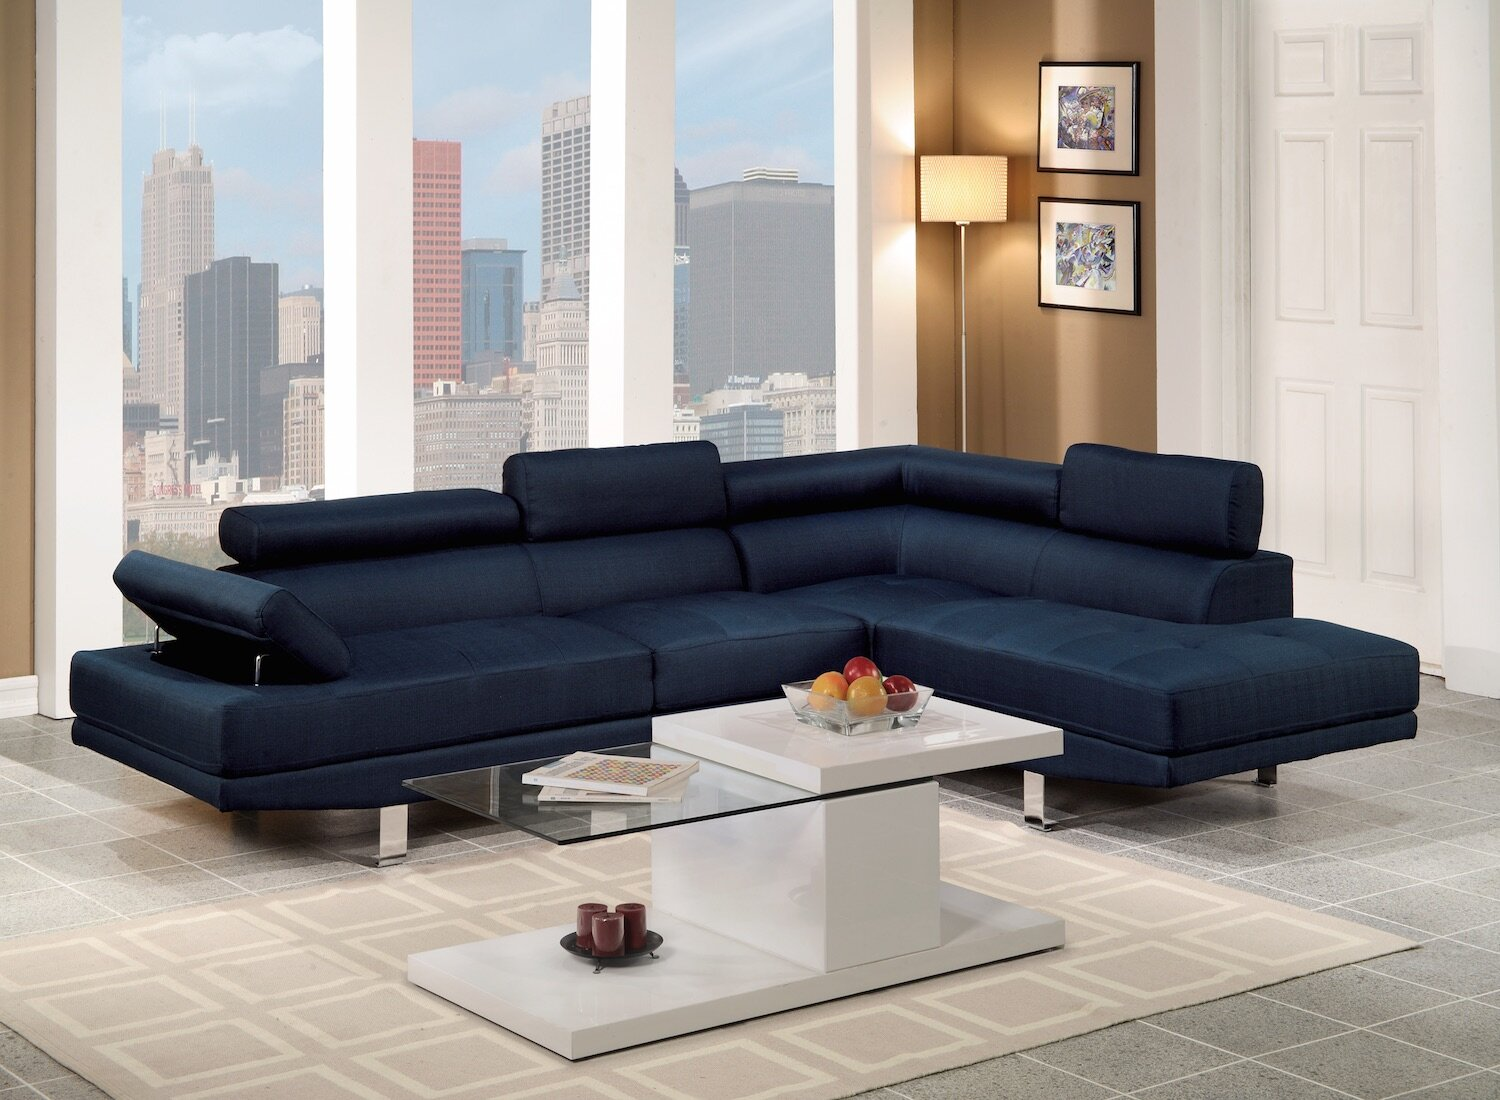 Genial Sectional